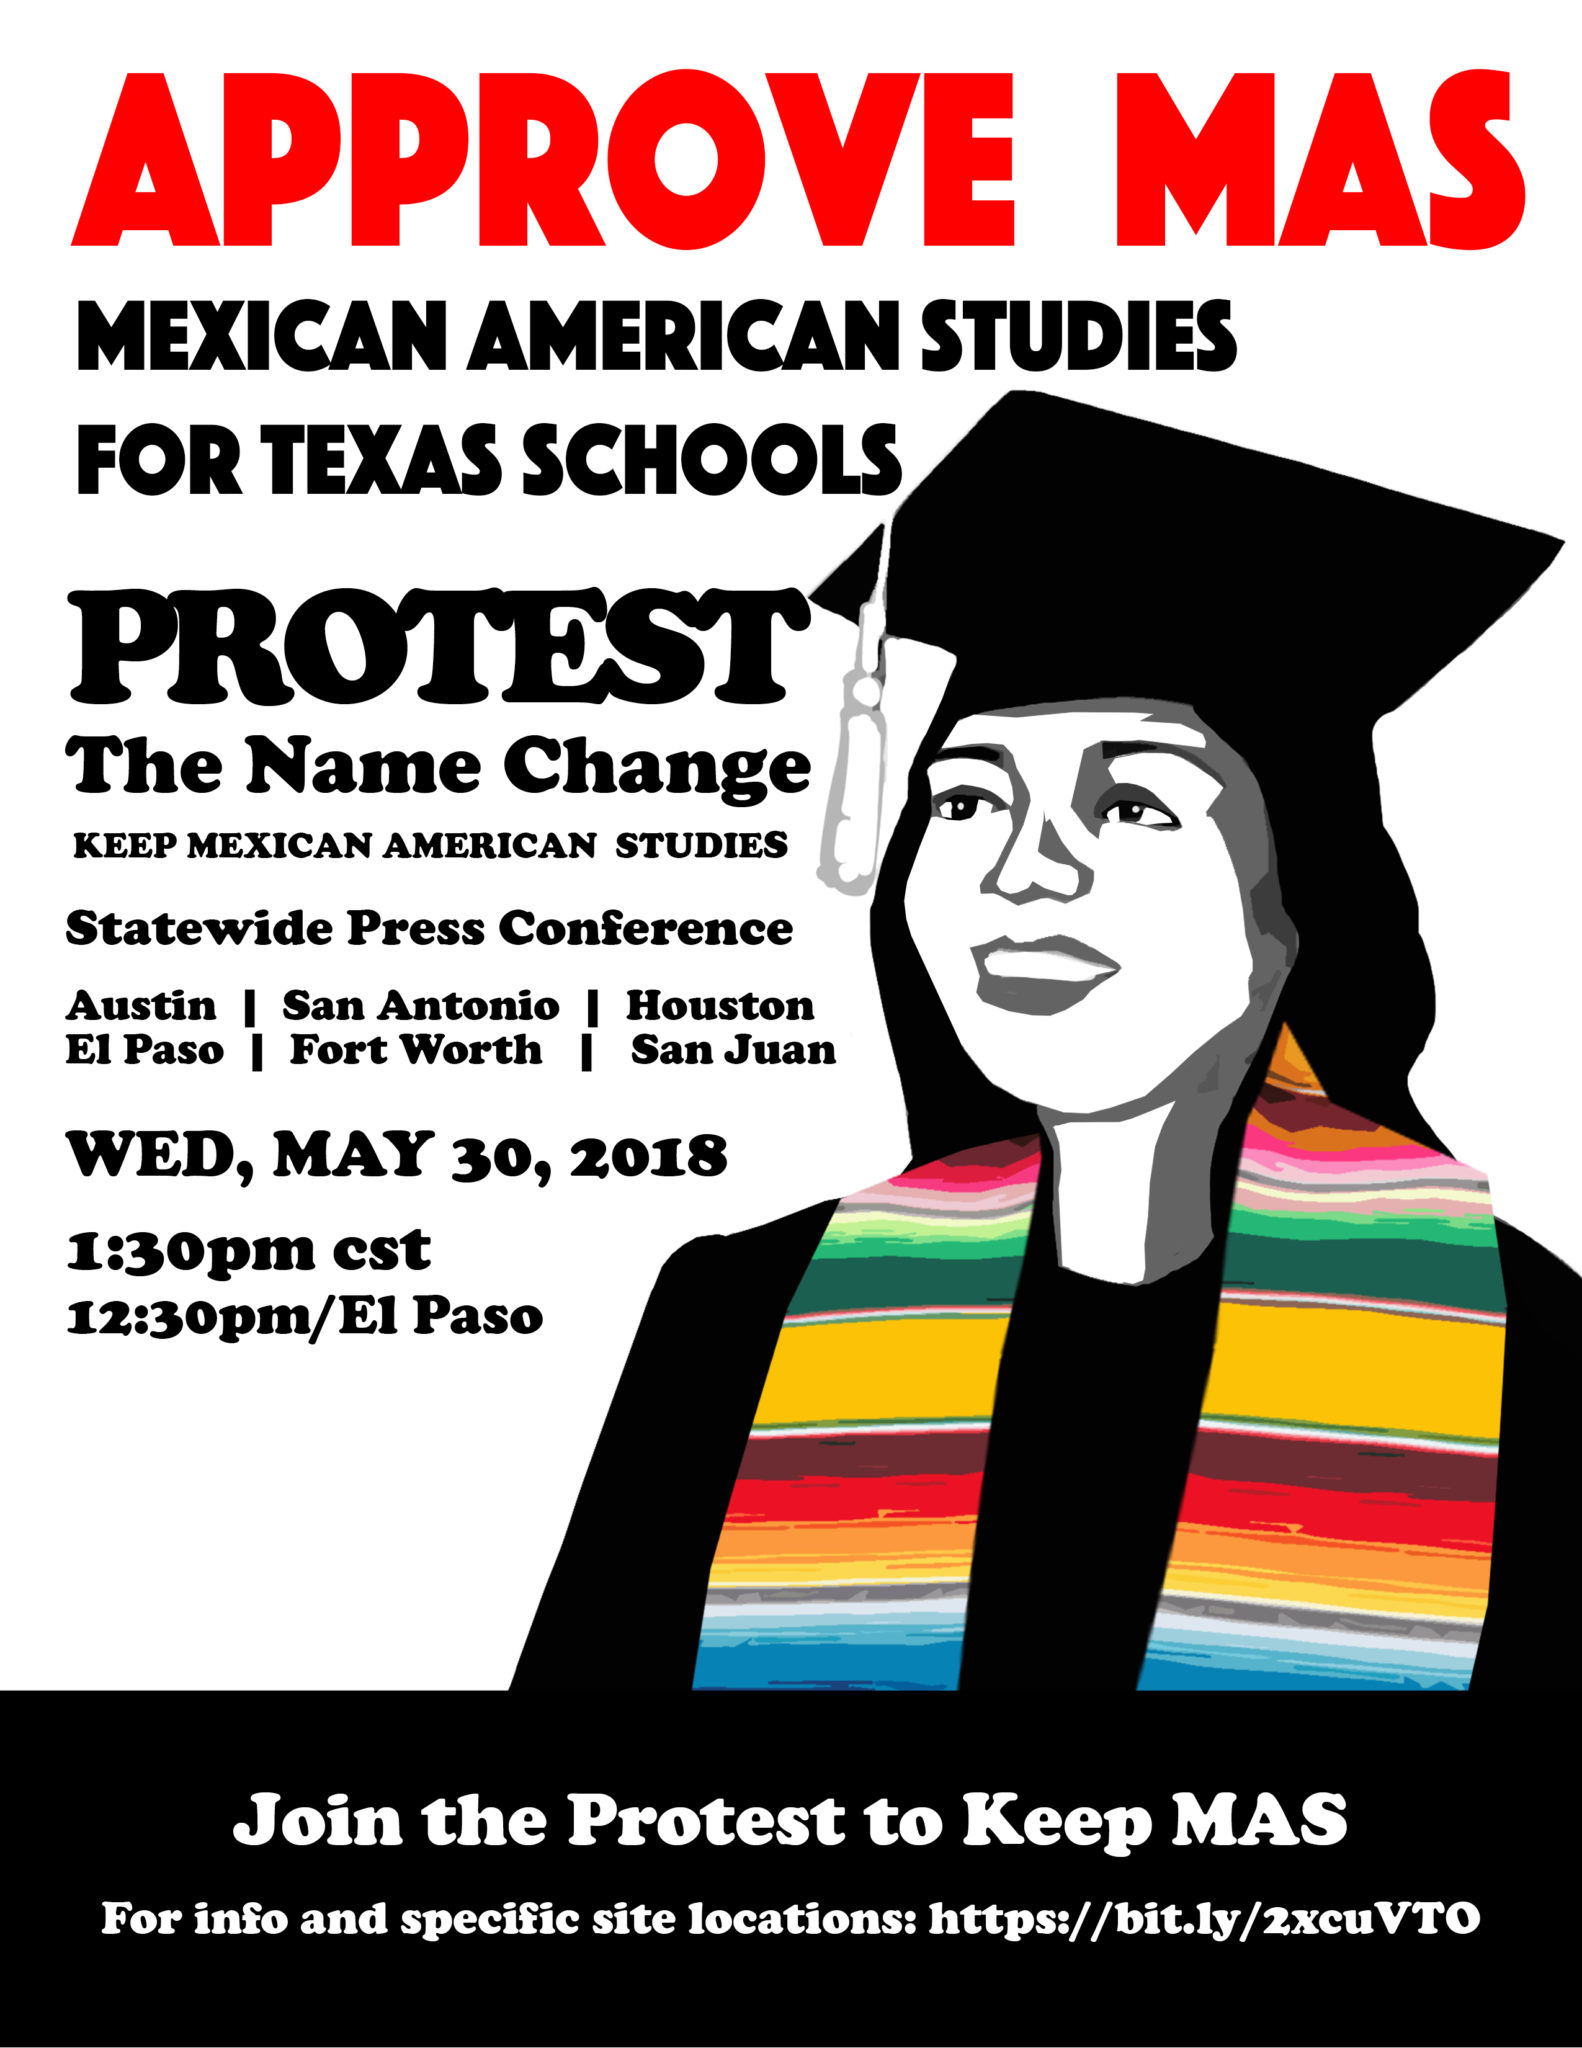 Protest the Name Change/Keep Mexican American Studies